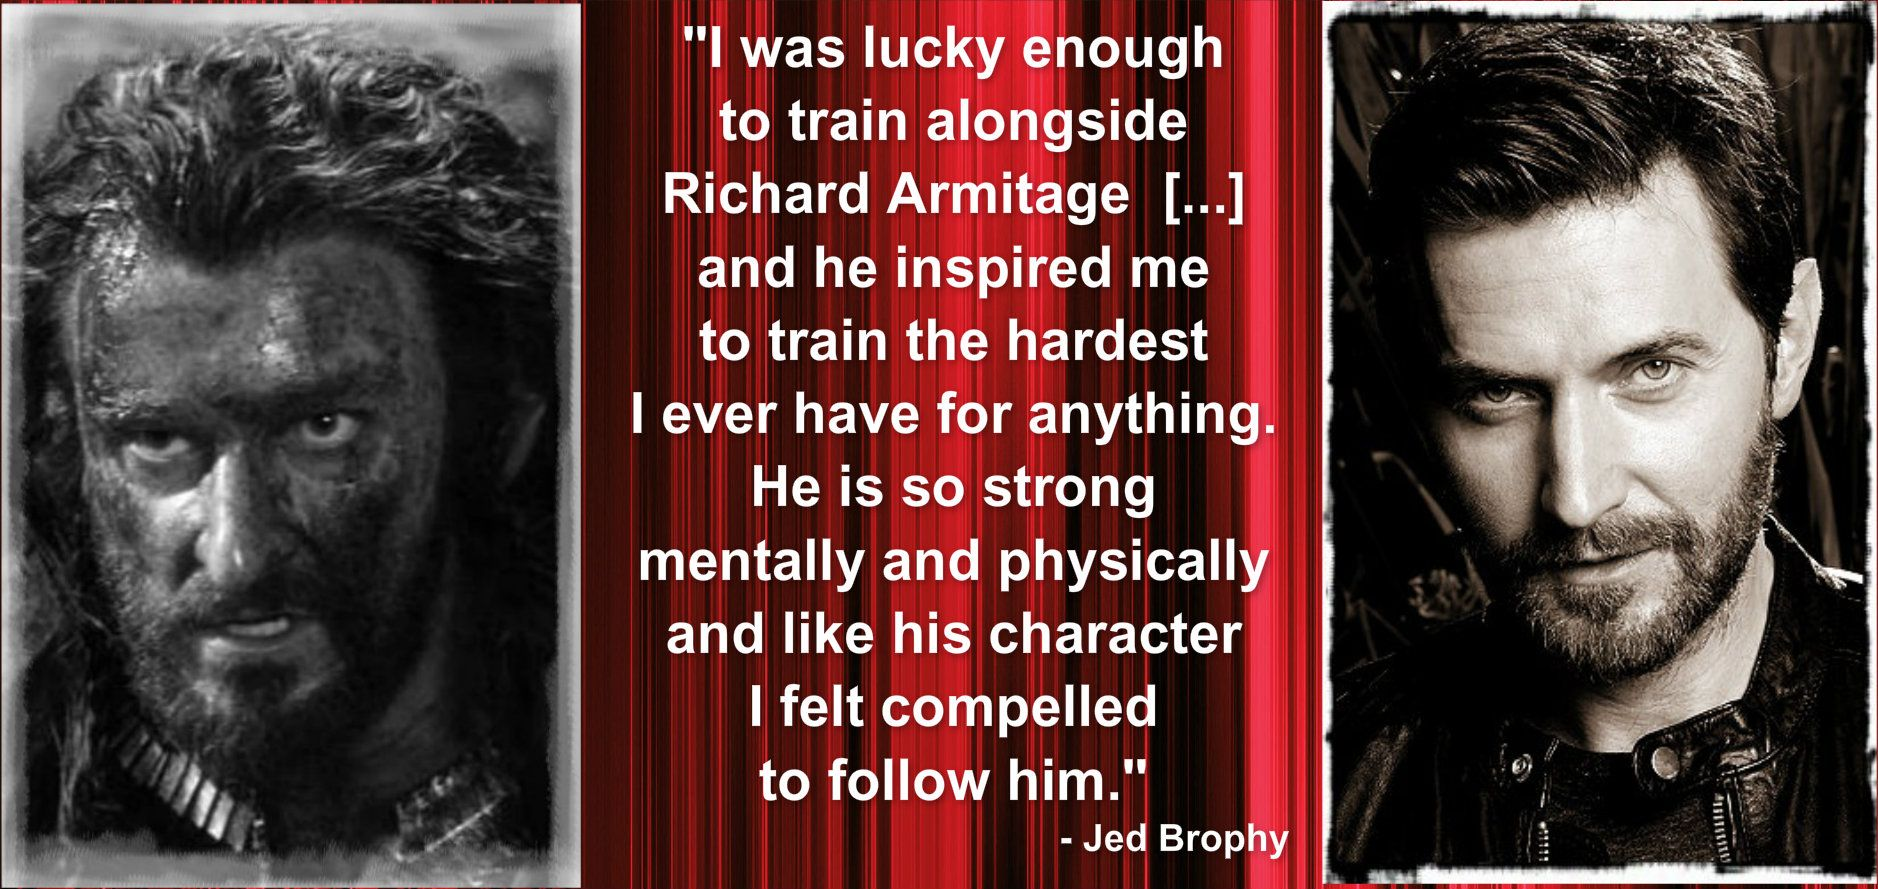 """Jed Brophy on Richard: """"He is so strong mentally and physically..."""".   From http://www.theonering.net/torwp/2013/10/06/80021-getting-to-know-jed-brophy/2/"""